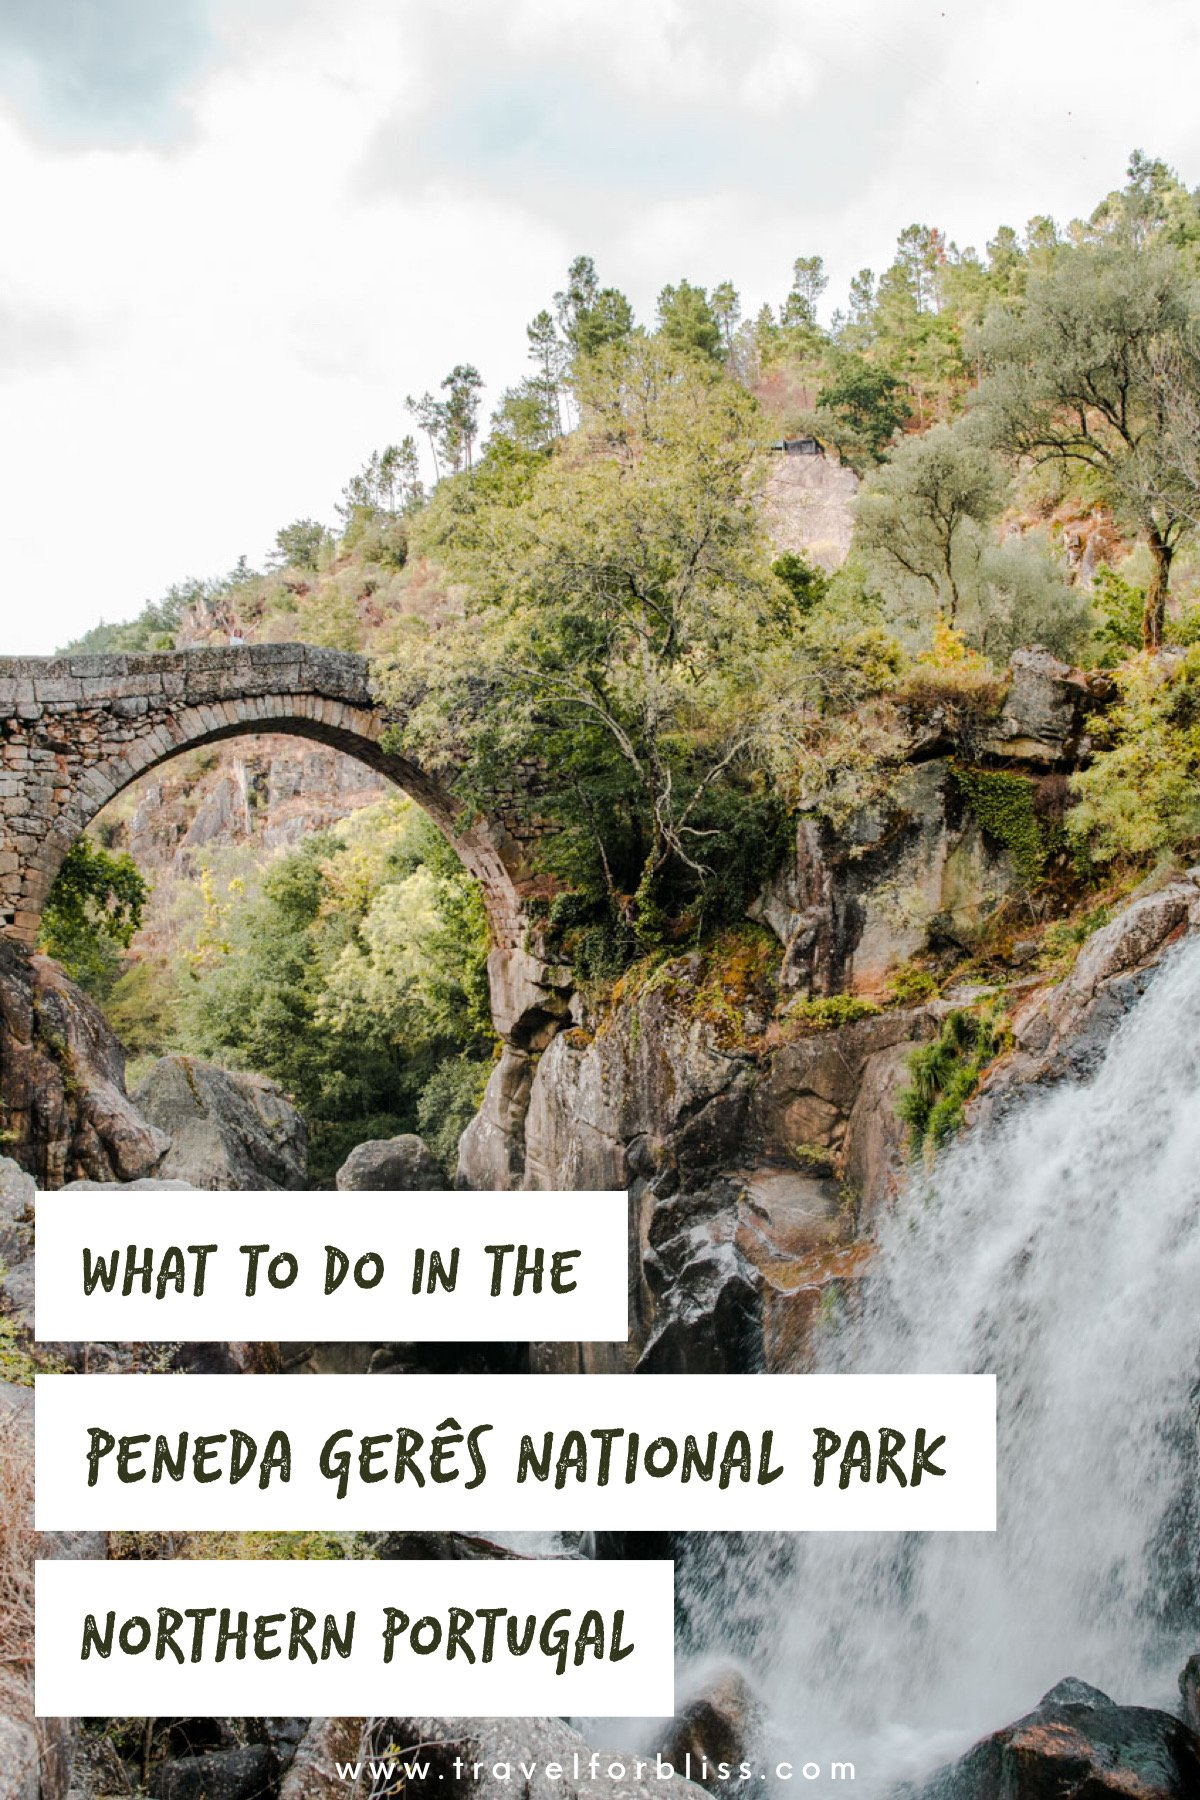 Discover the best things to do in the Peneda Gerês National Park in Norther Portugal. One of Portugals best and most remote national parks. Peneda Gerês is full of history and natural wonders to explore.